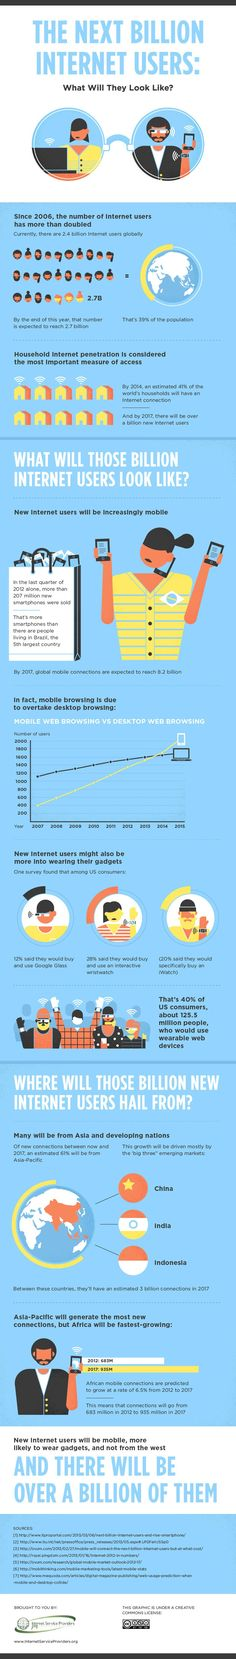 The next billion Internet users #infographic